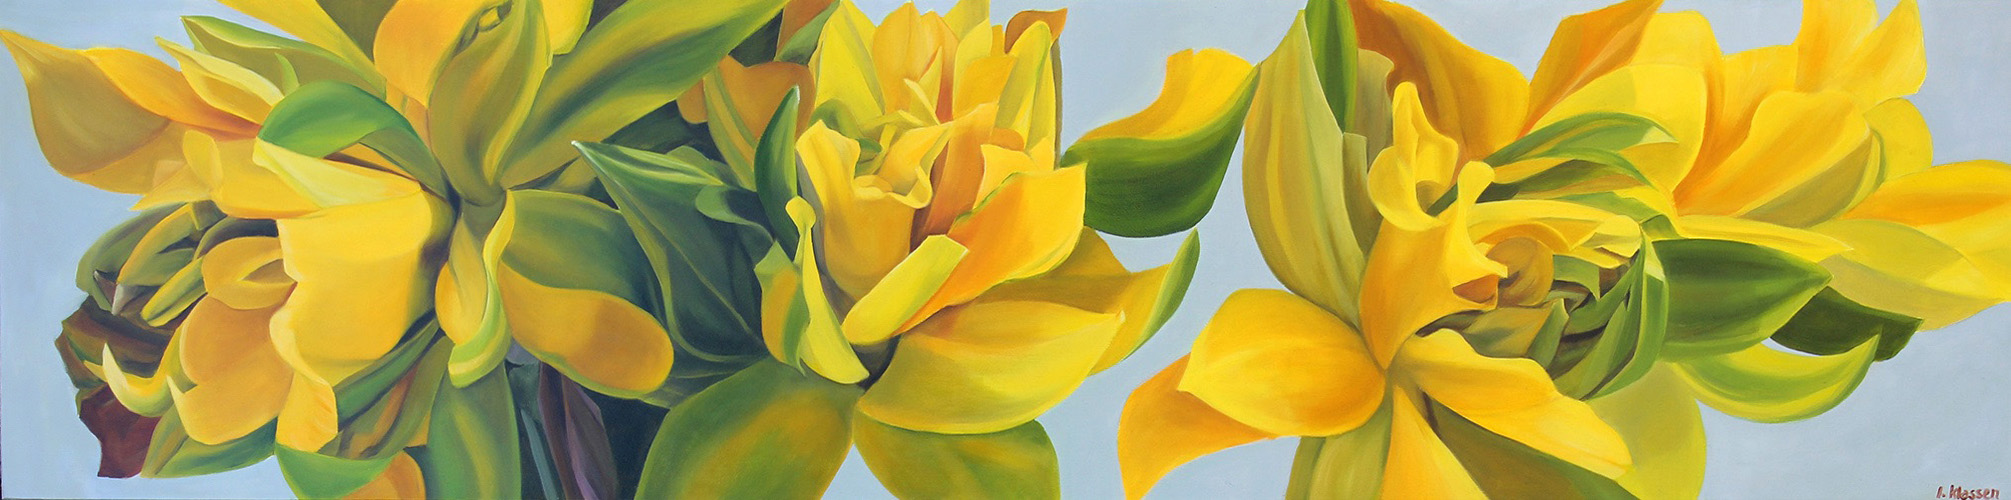 Botanical paintings - WITH A FRESH PERSPECTIVE